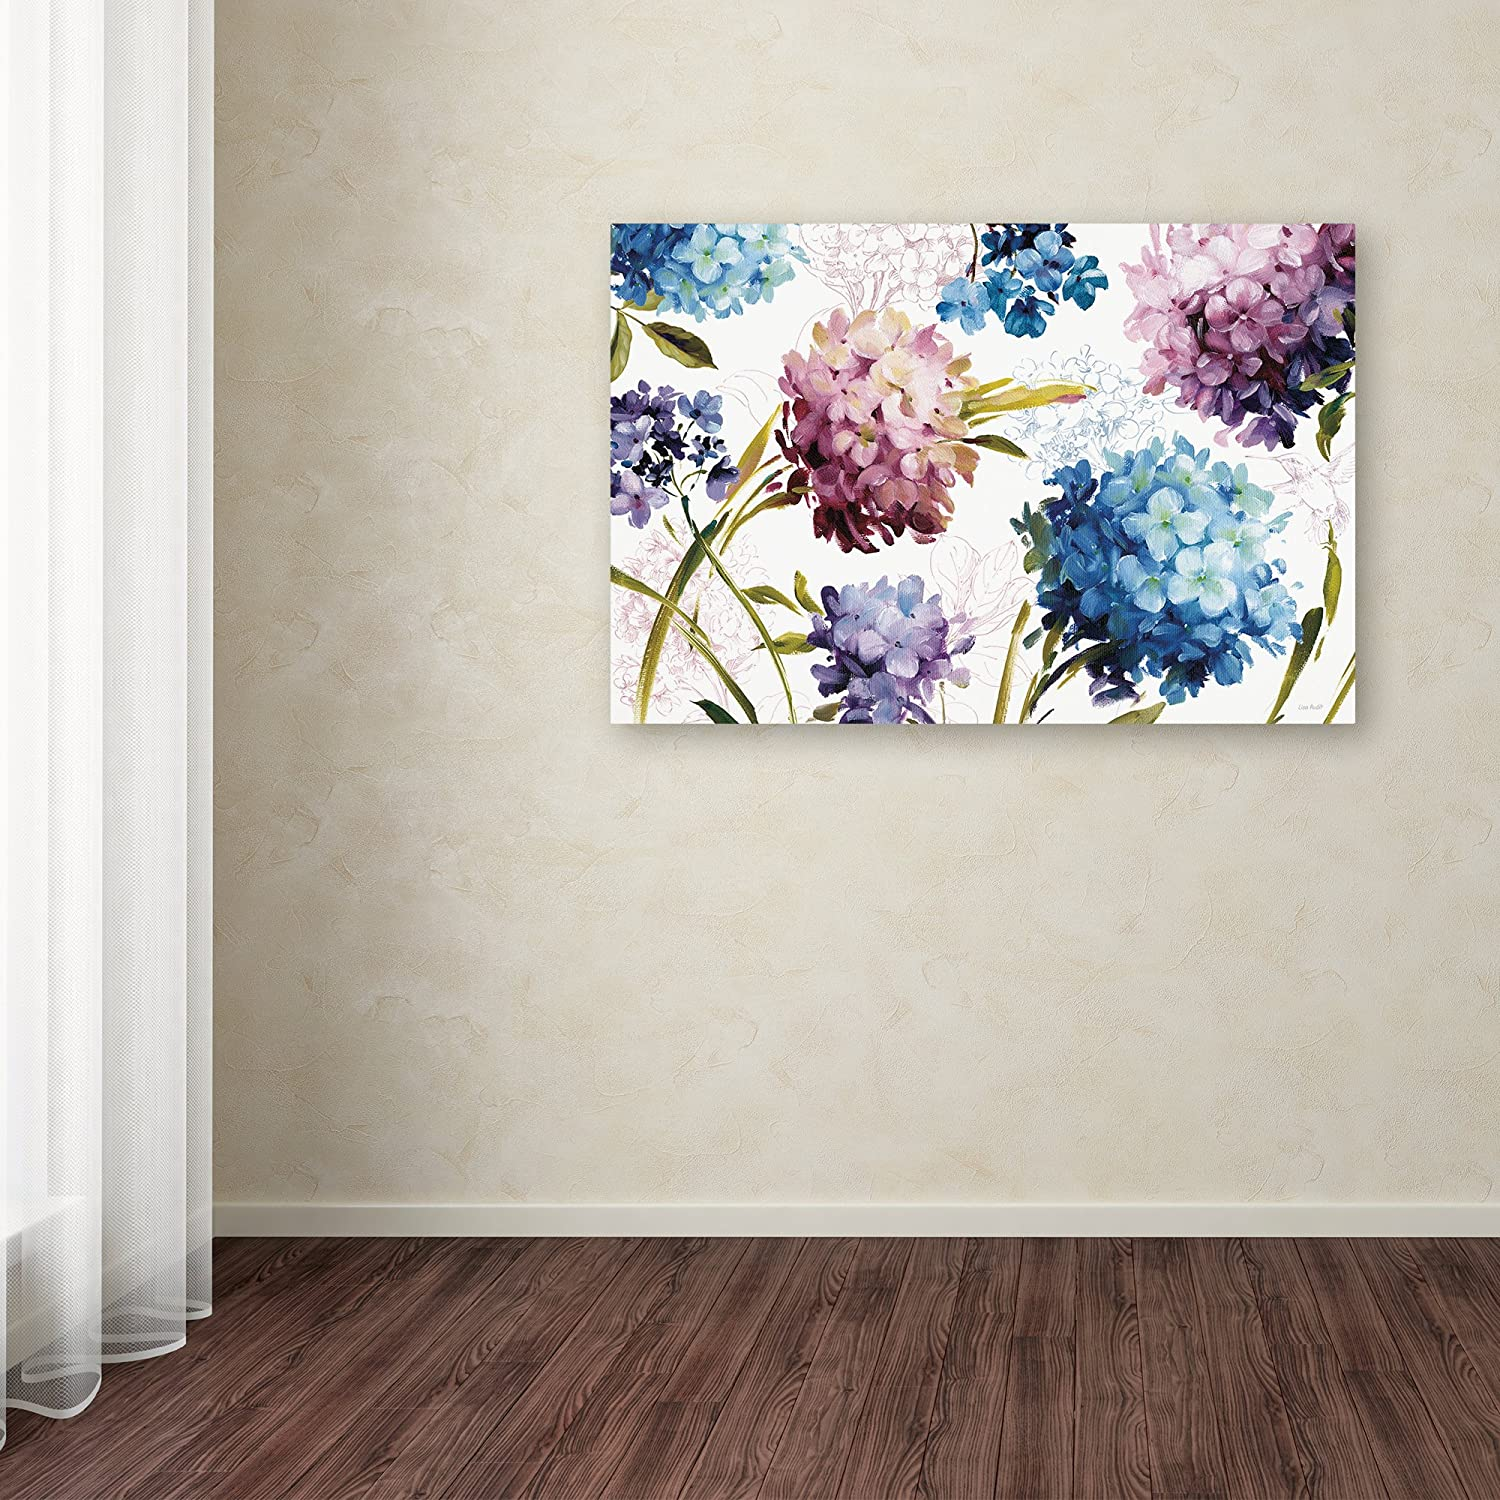 Amazon Com Spring Nectar I Laurie Wall Decor By Lisa Audit 16 X 24 Canvas Wall Art Posters Prints